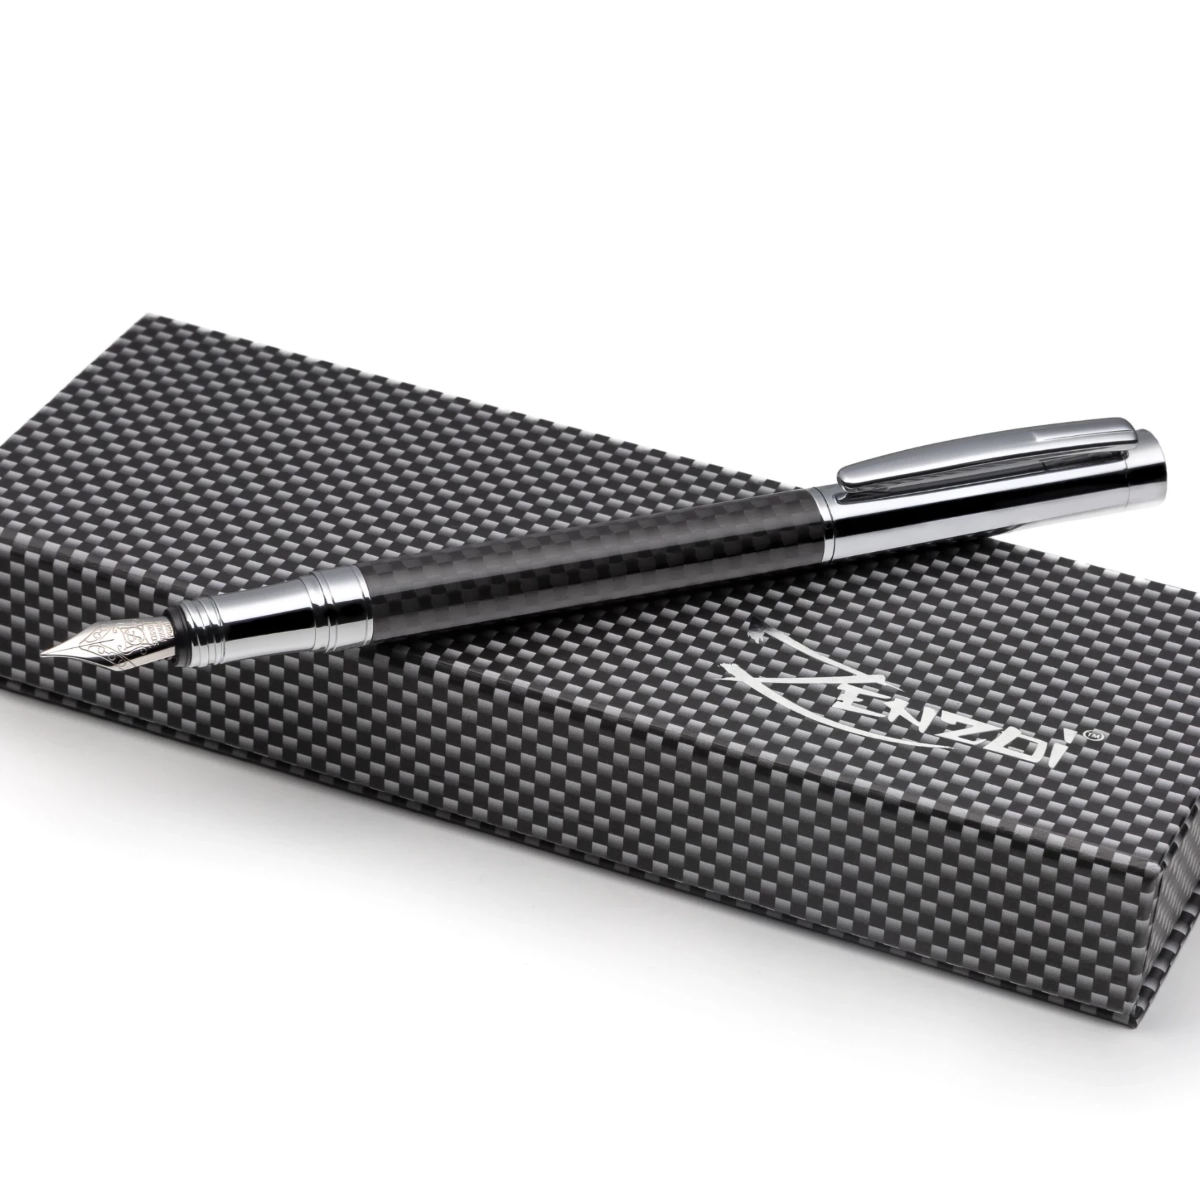 Carbon Fiber and Silver Fountain Pen Set with Schmidt Fine Nib